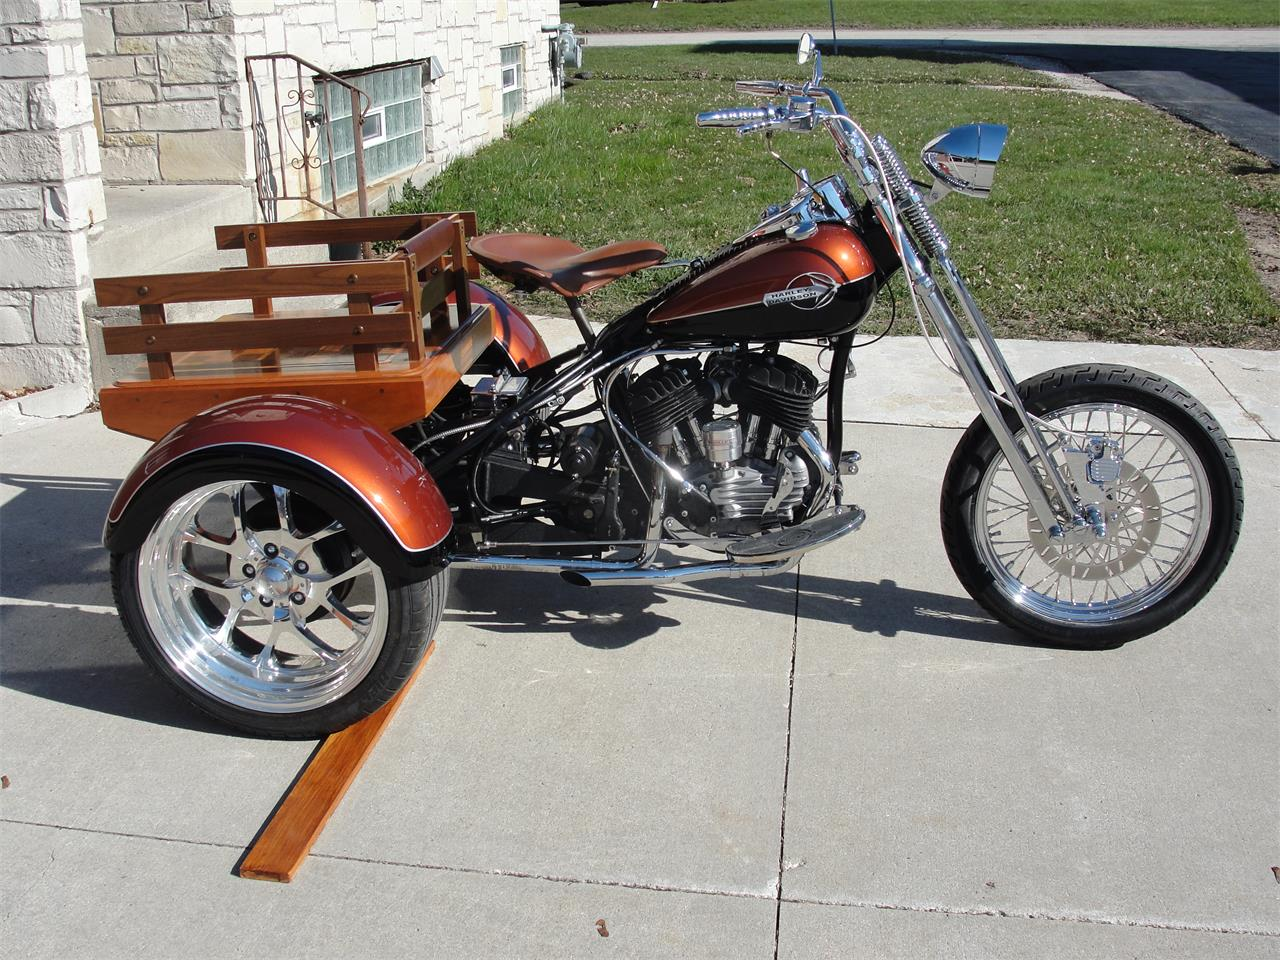 Large Picture of '66 Harley-Davidson Servi-Car - $28,500.00 Offered by a Private Seller - HHFZ